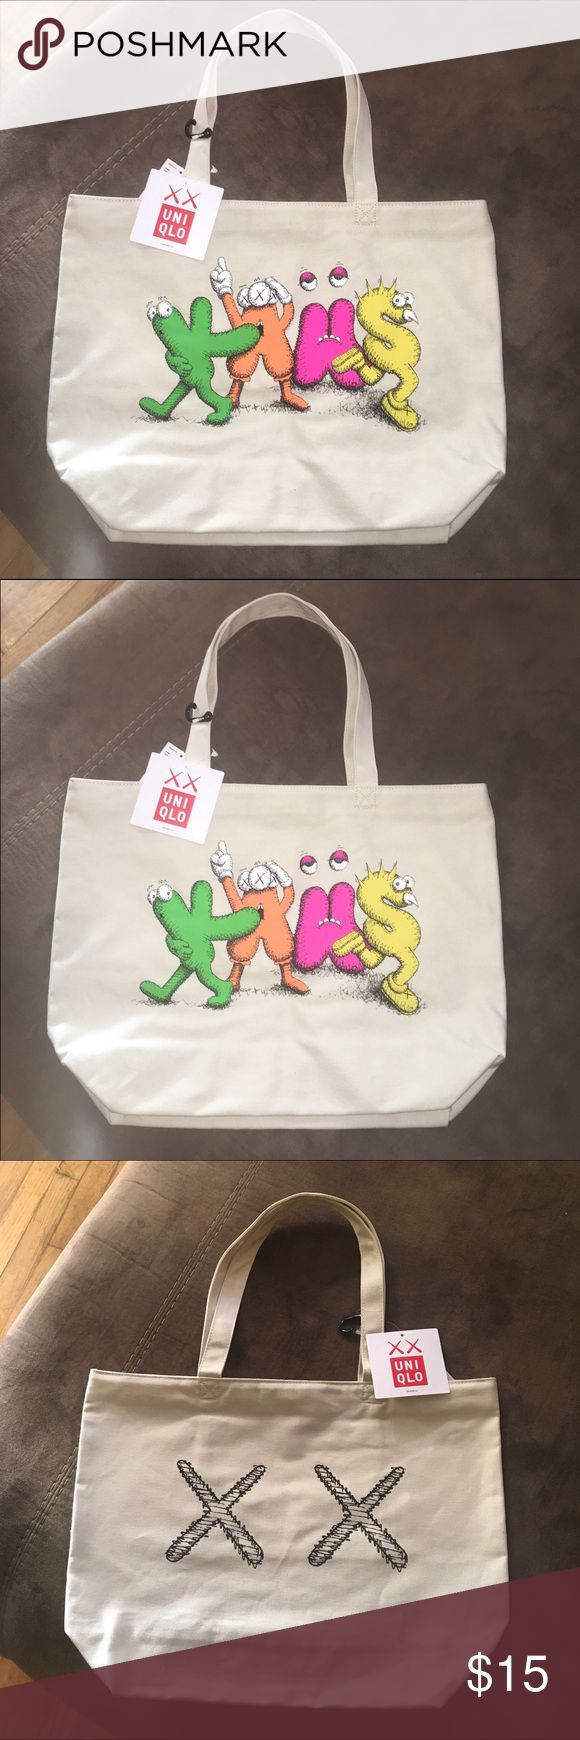 Uniqlo Kaws Bag ! Special PRICE NWT ! Cream TOTE BAG ! NWT ....Uniqlo Kaws Edition ...Ask for Offer , Leave Phone Number Under Comments for Offer. Uniqlo Bags Totes